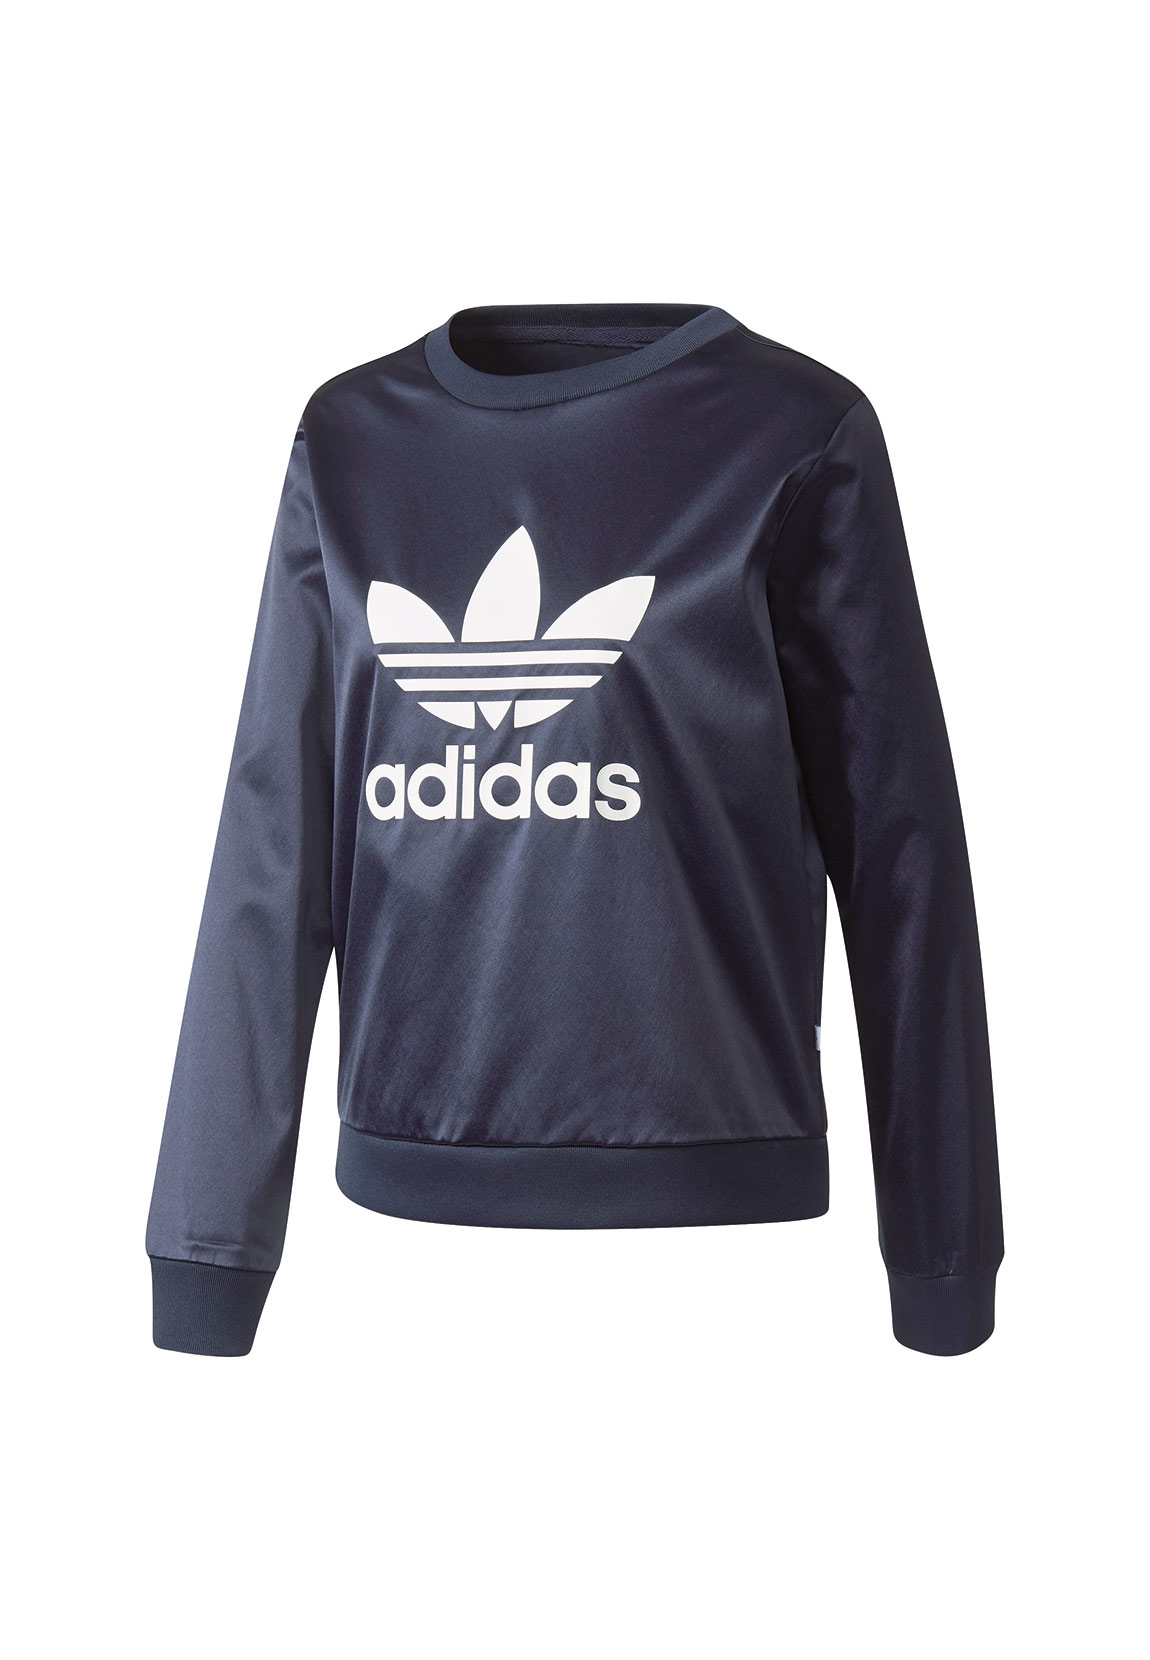 adidas pullover mit rosen adidas pullover mit rosen online. Black Bedroom Furniture Sets. Home Design Ideas